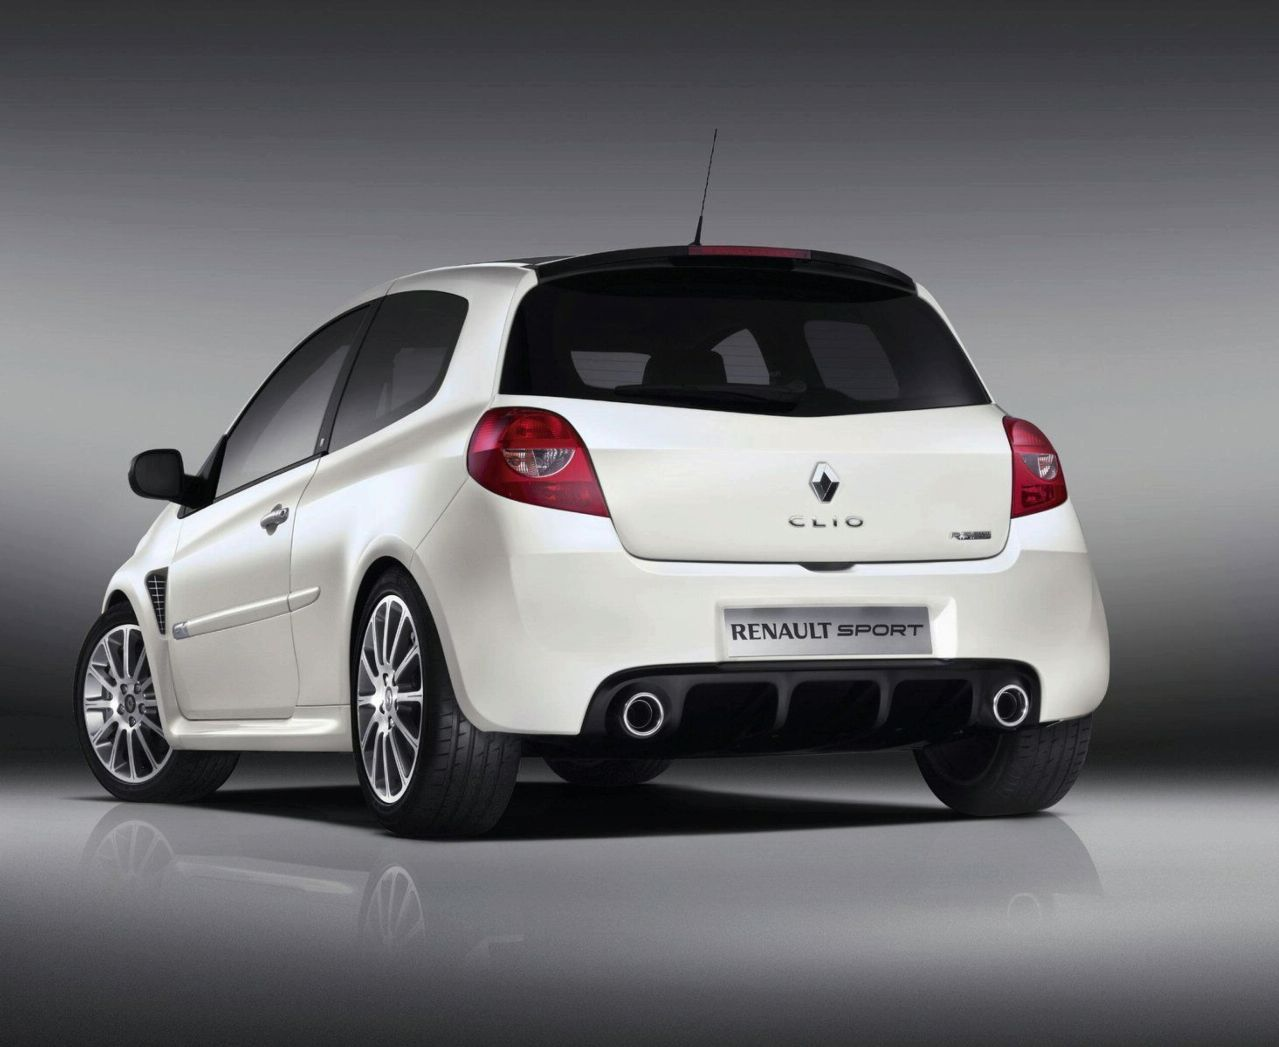 Renault Clio Iii R S 20th Anniversary Special Edition 2010